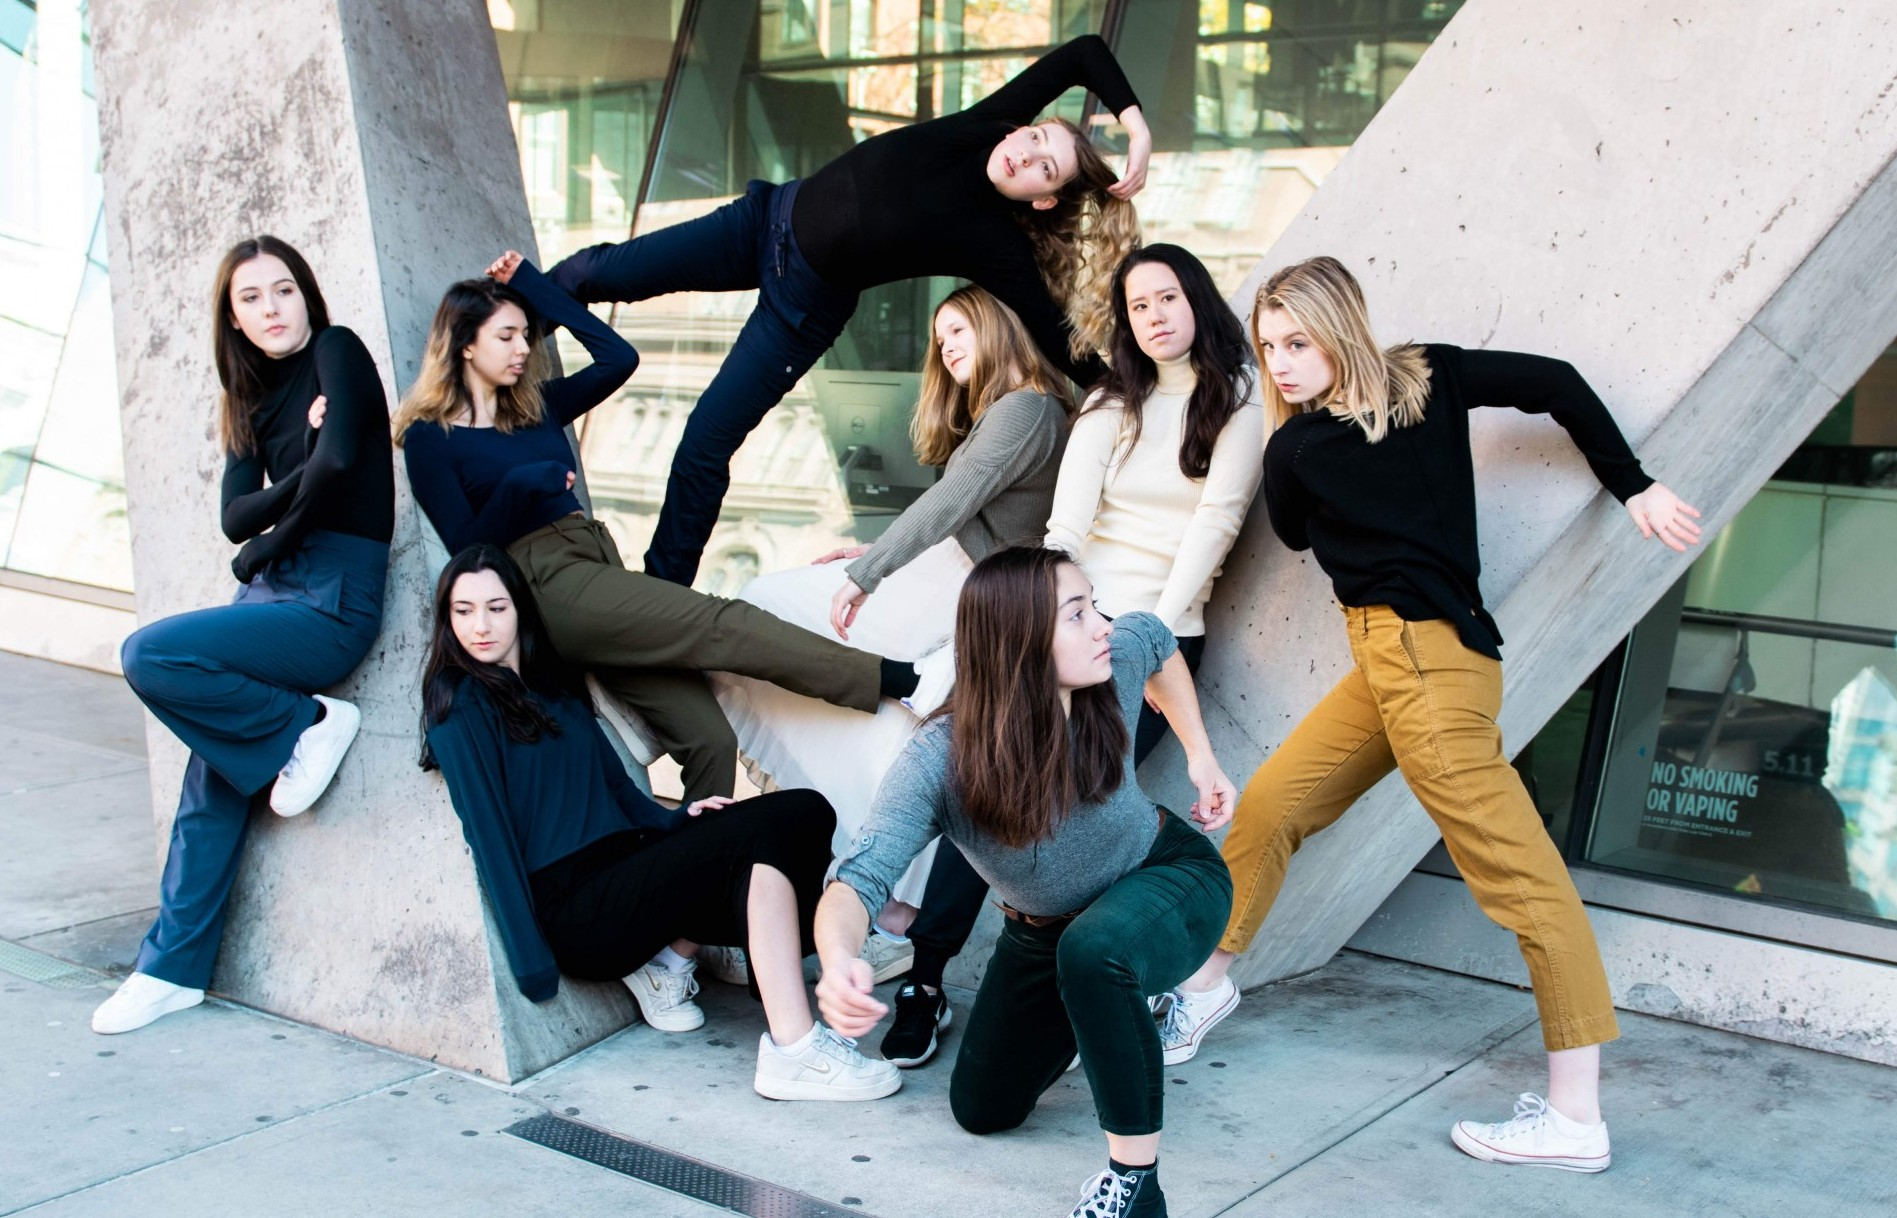 Cast of Terraform (the MaMa Project 2018-2019, choreographed by Melody Tai) in promotional photography captured by Savannah Lim